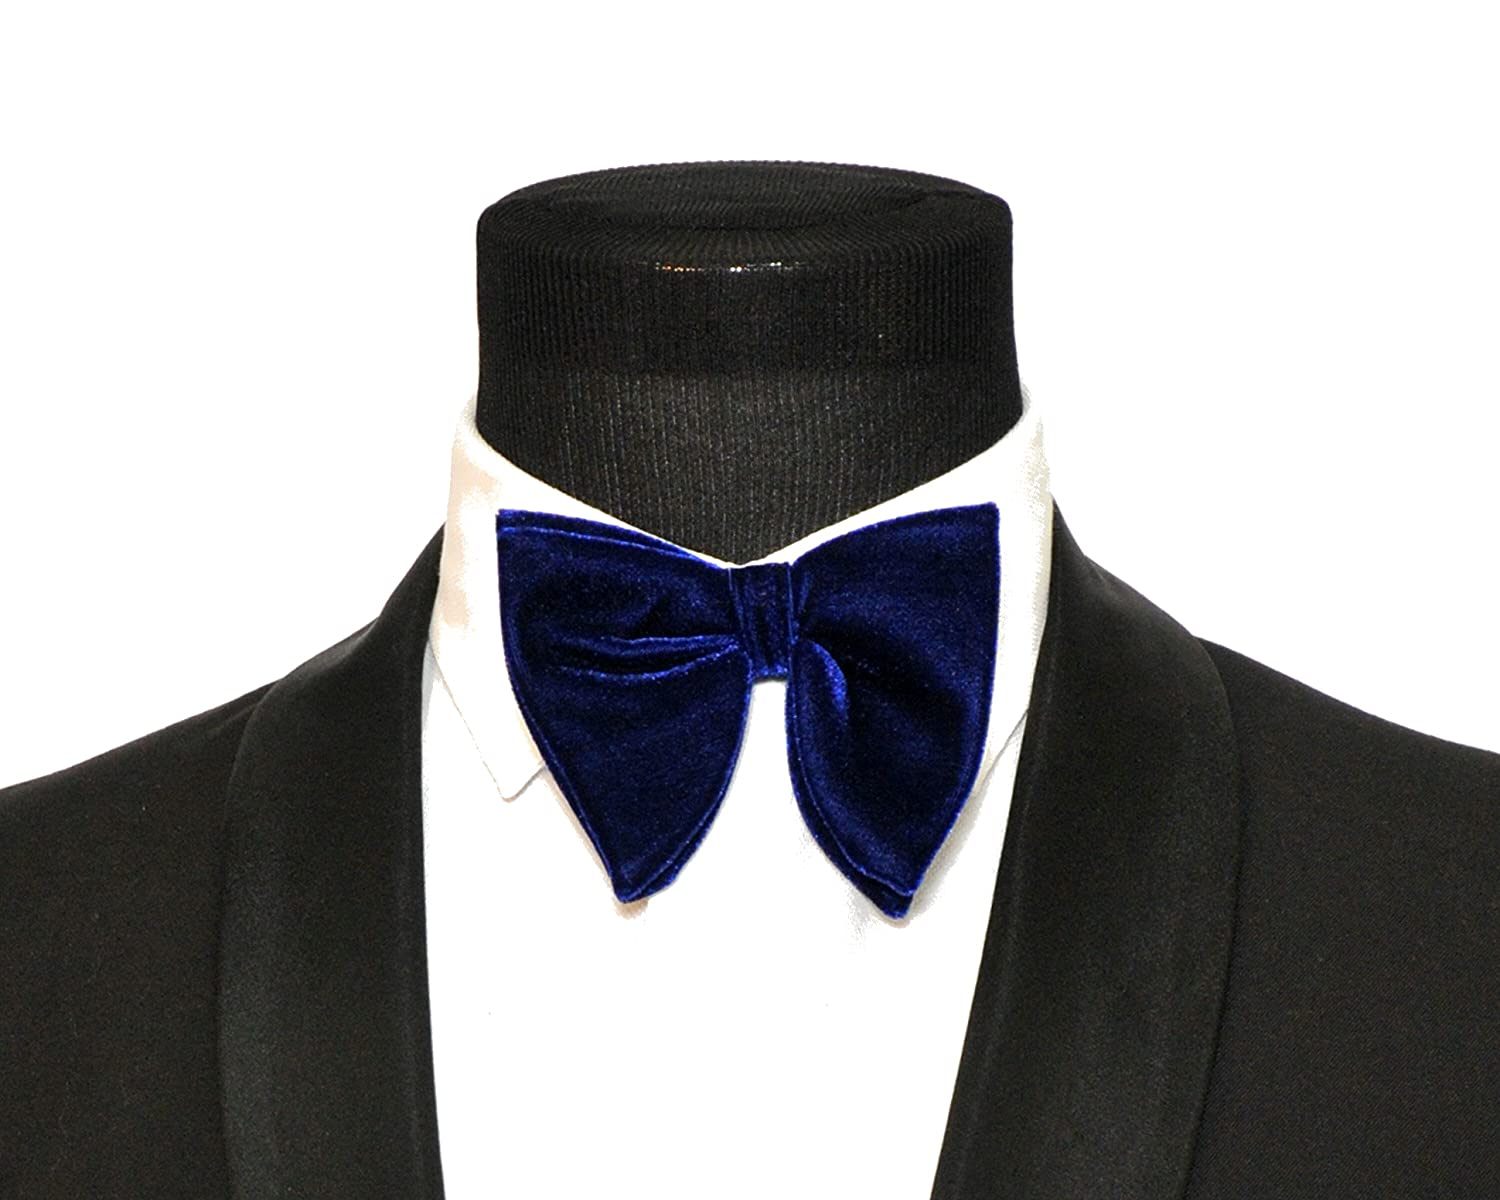 db87c20f9a0e ashion forward and progressive style, ideal for weddings, proms, casual  events. Each bow tie is created with a smooth velvet finish and fully  fluffed with ...